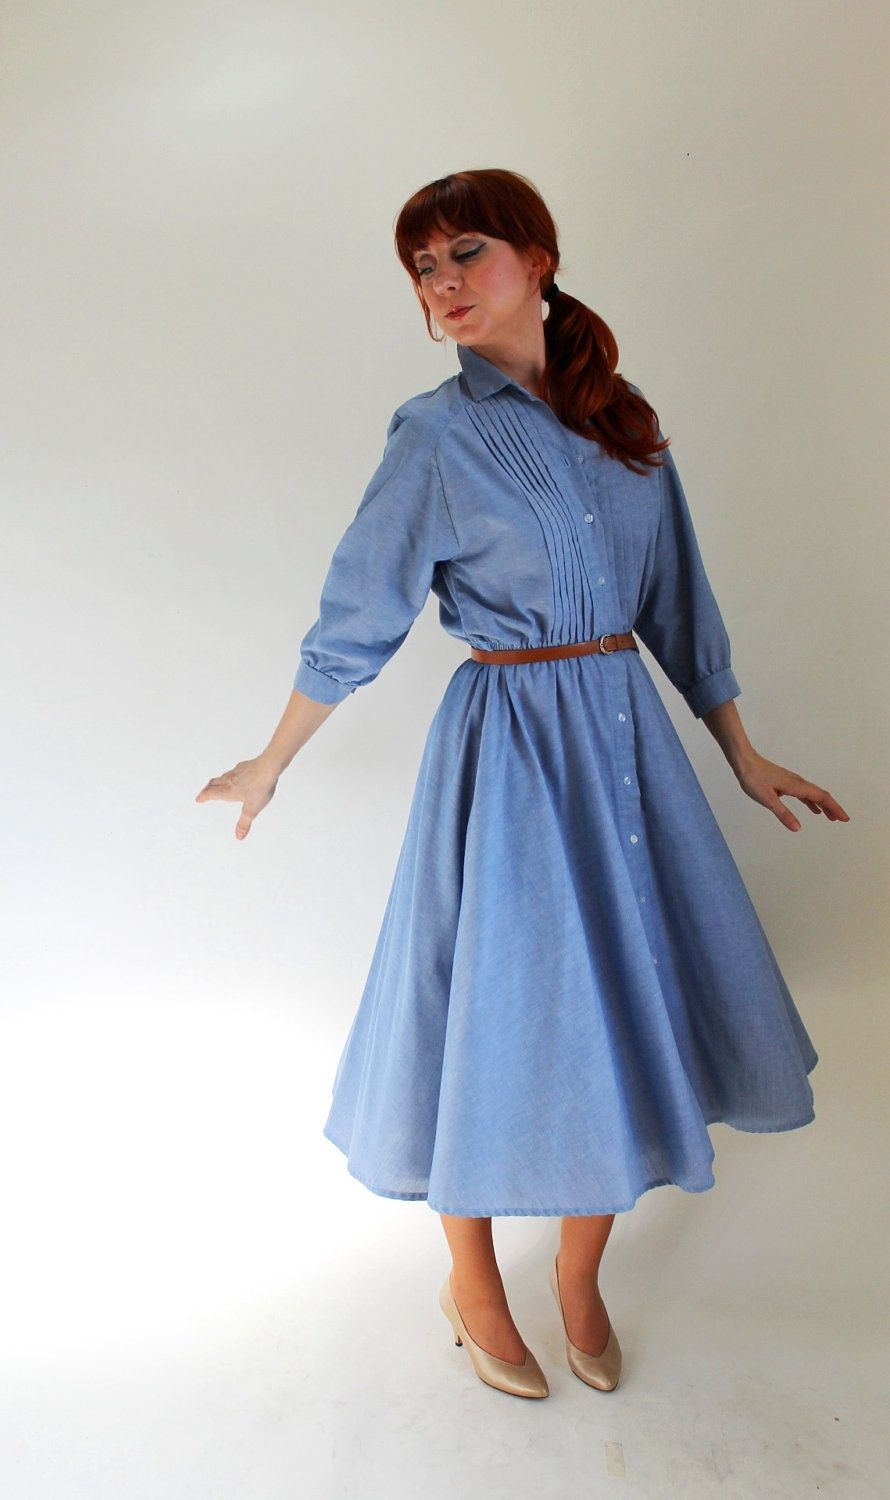 Sale - Vintage 1980s Blue Chambray Shirtdress. Mad Men Fashion ...